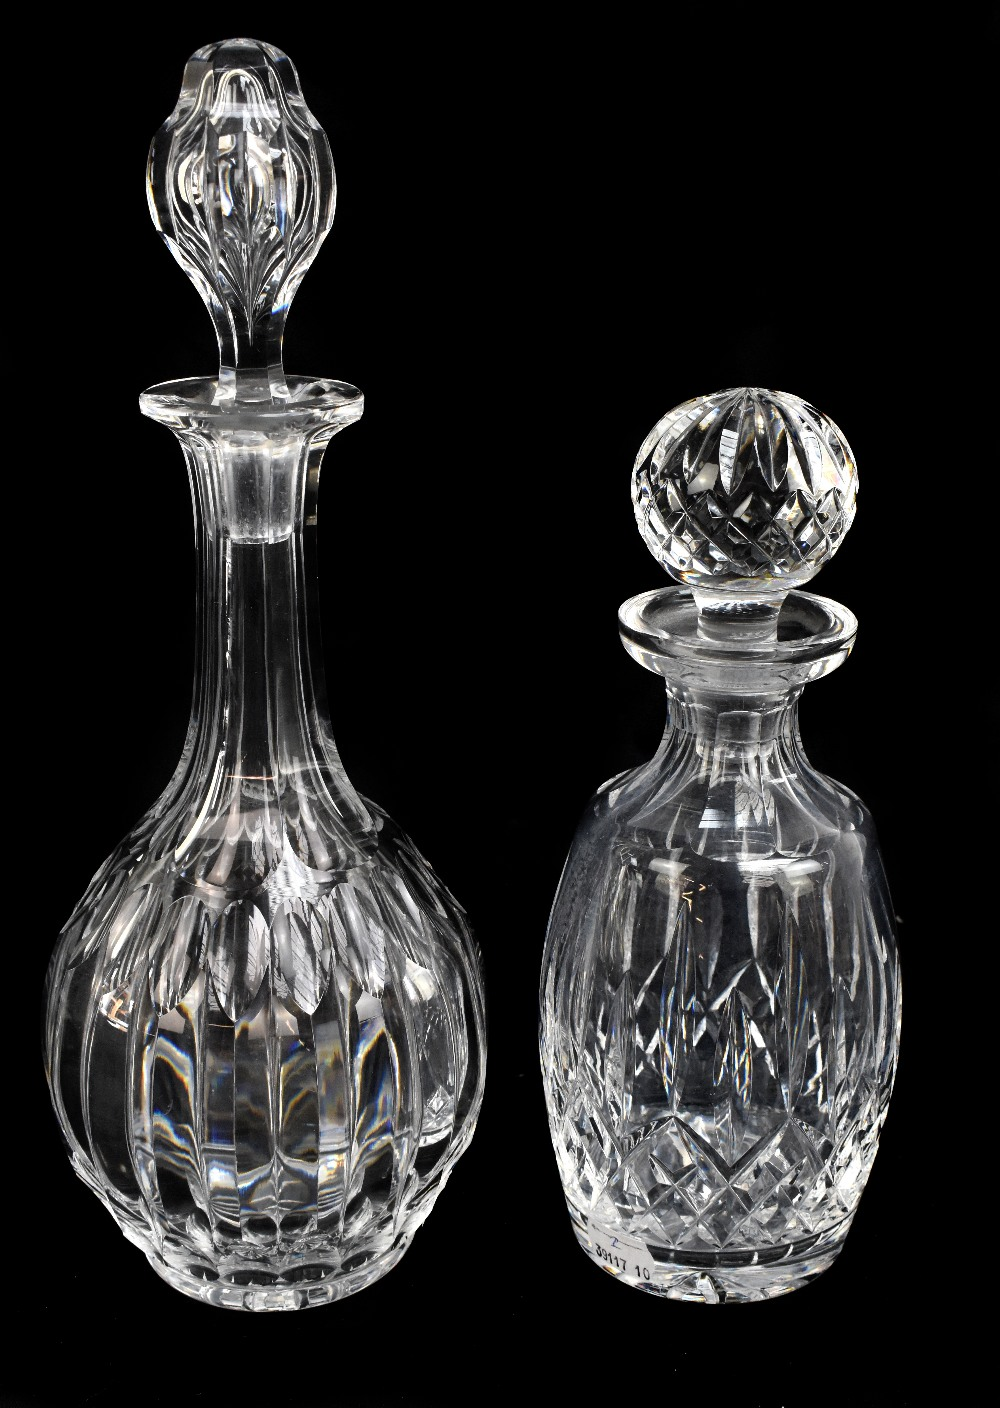 A 19th century cut glass decanter and stopper, the globular body cut with angular facets, with a